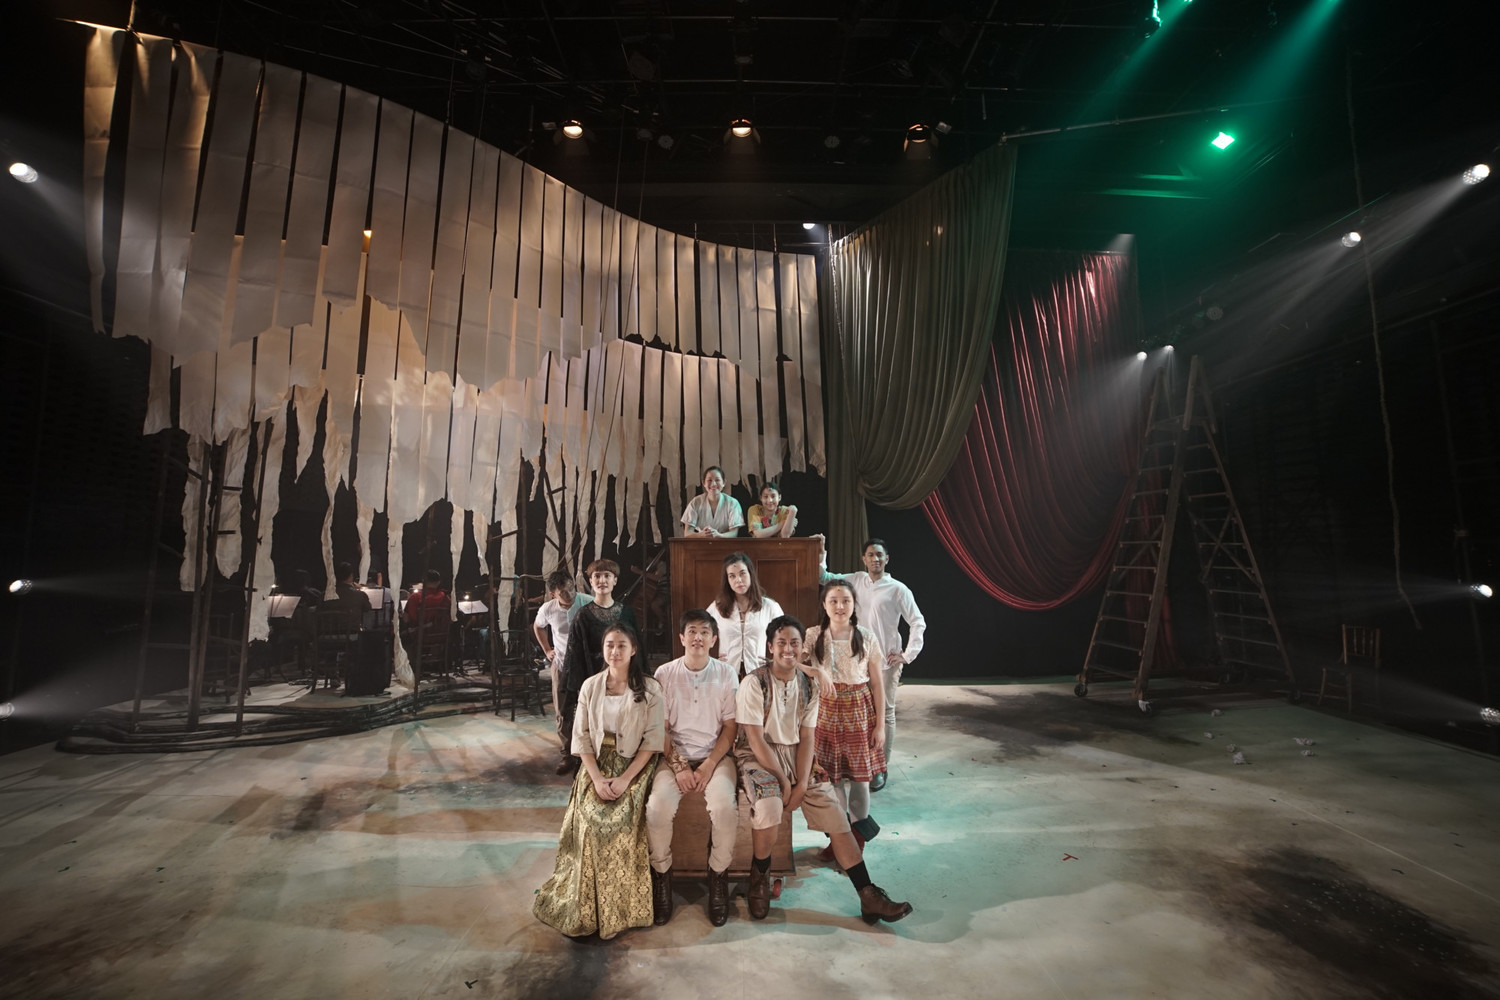 BWW Review: TEMAN Takes A Giant Step with INTO THE WOODS